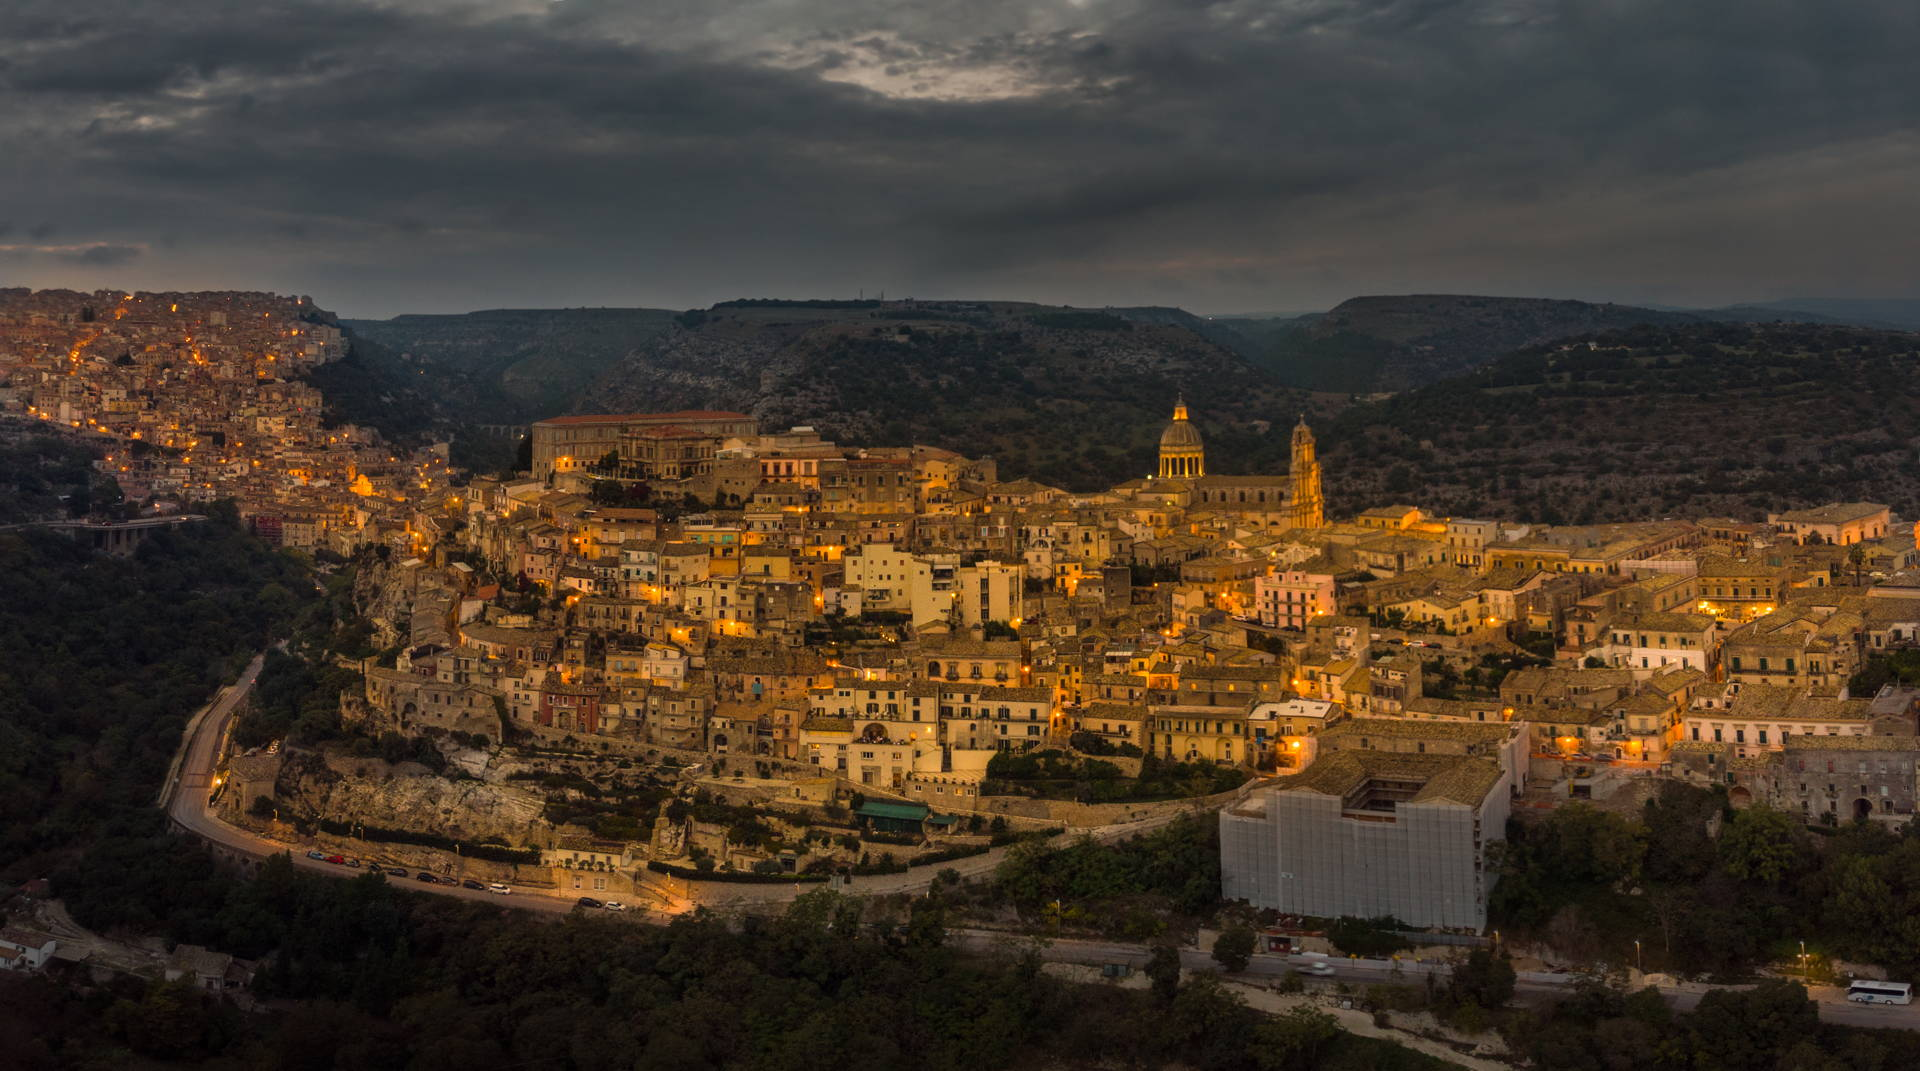 ragusa, ragusa ibla, ragusa drone, aerial view of ragusa, aerial ragusa ibla, best places to travel in sicily, sicily, italy, travel